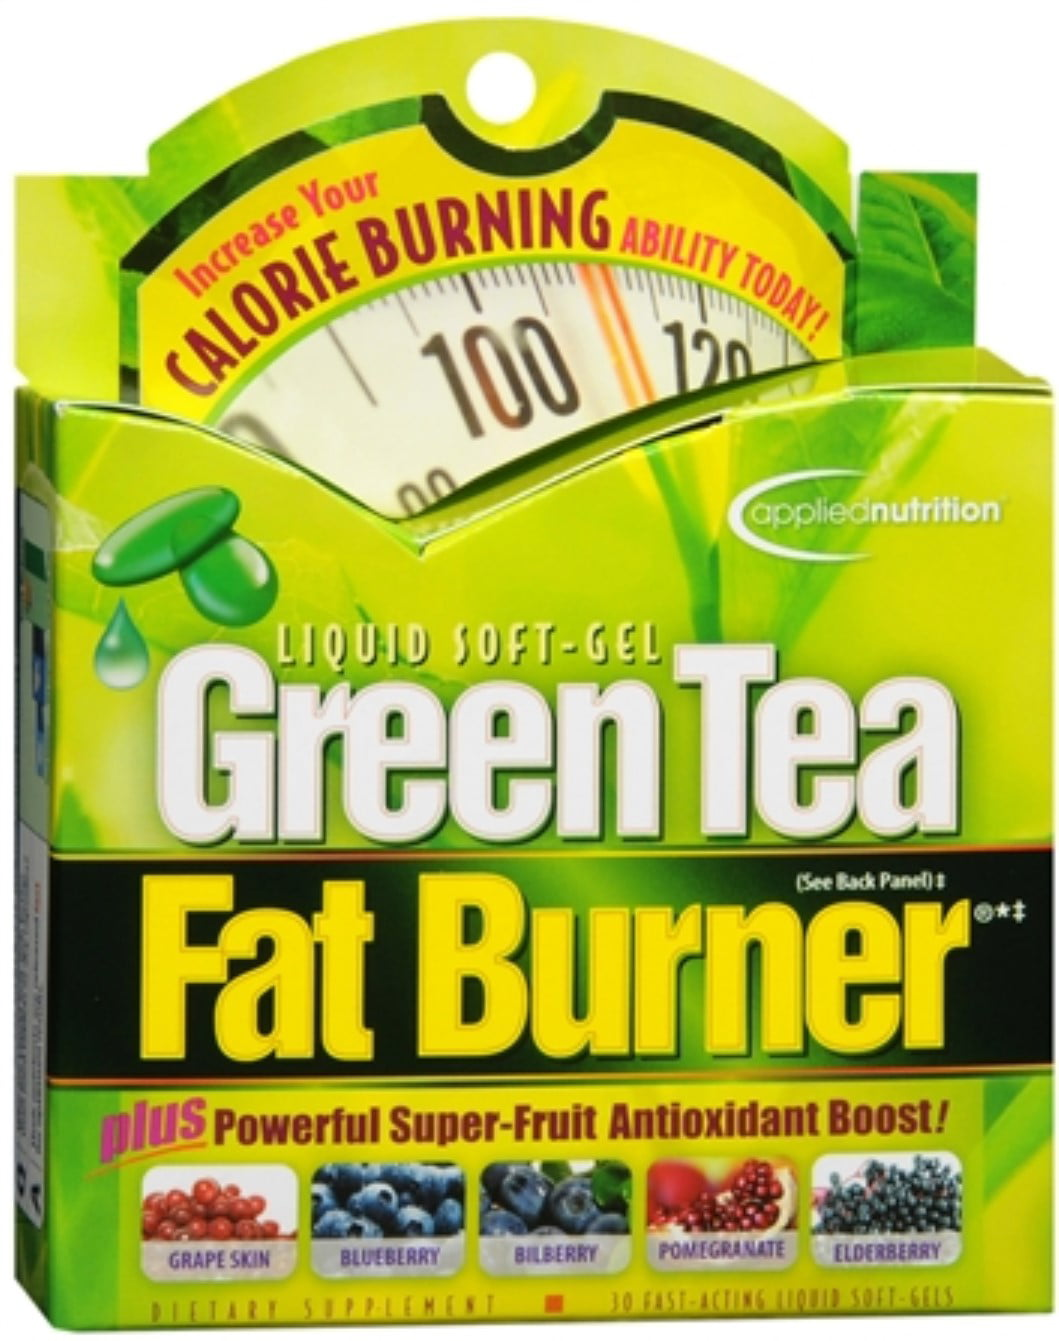 green tea fat burner and garcinia cambogia